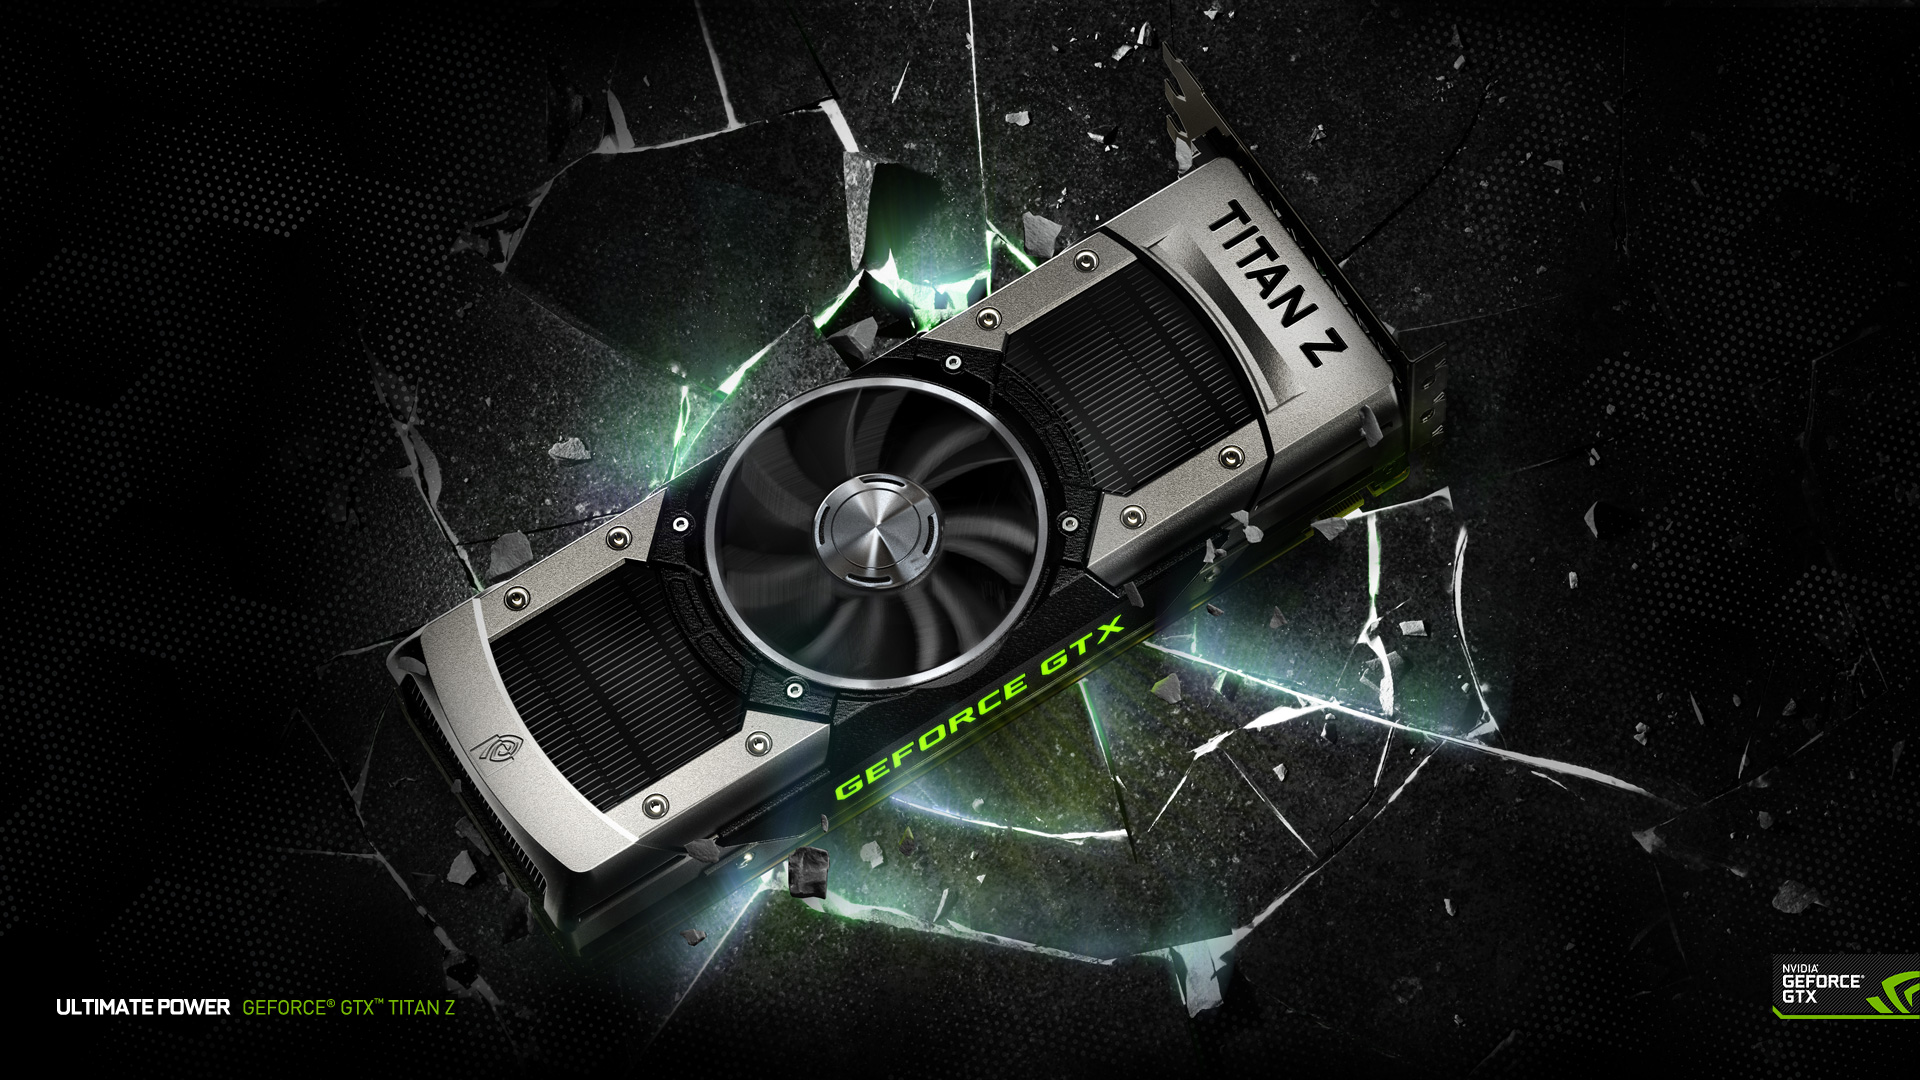 Download GeForce GTX TITAN Z Wallpapers